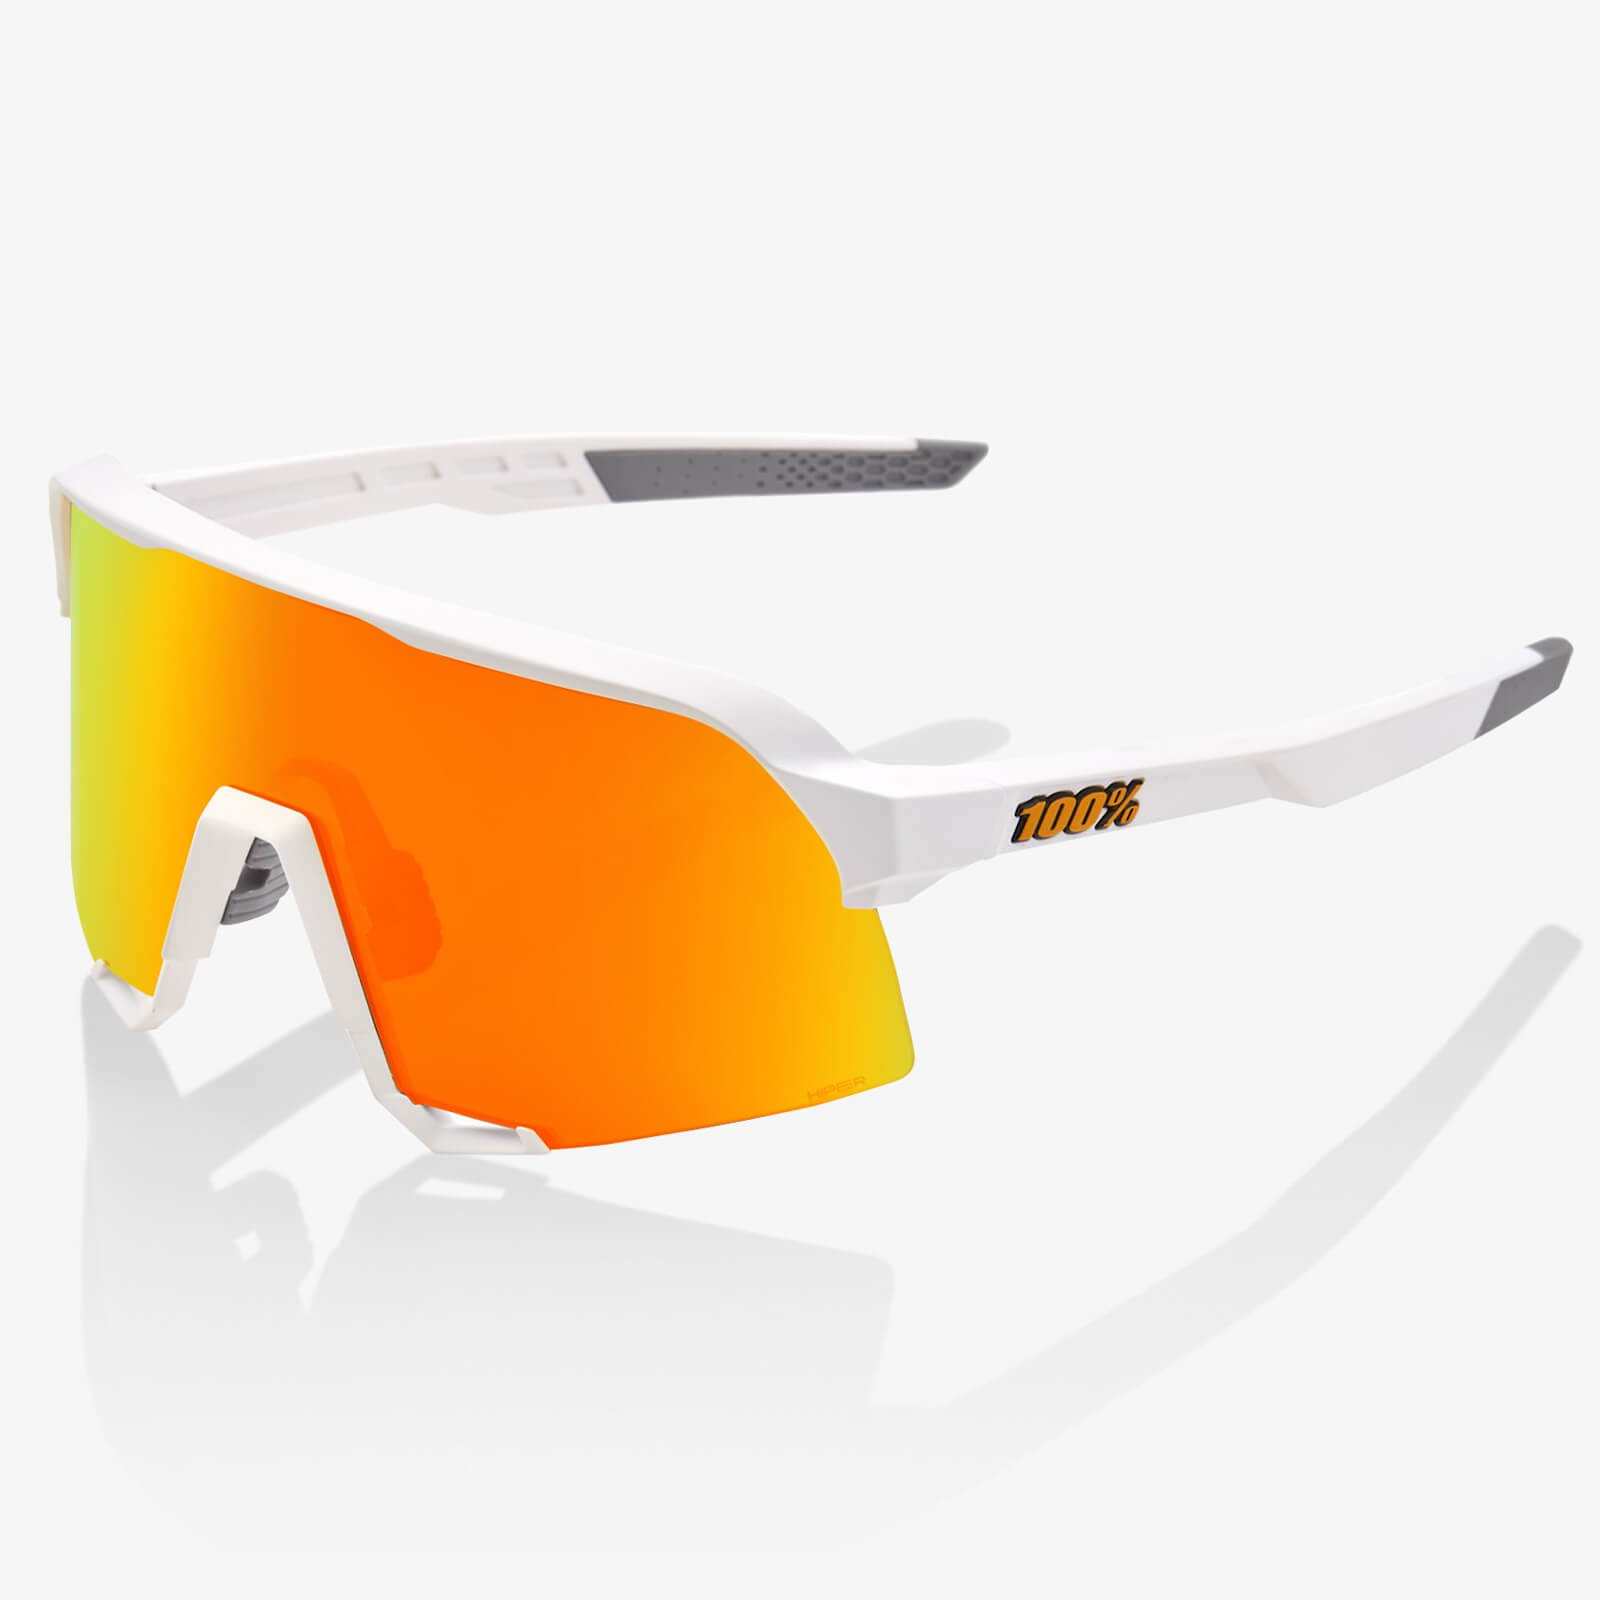 100% S3 Sunglasses With Hiper Multiplayer Mirror Lens - Soft Tact White/red Lens